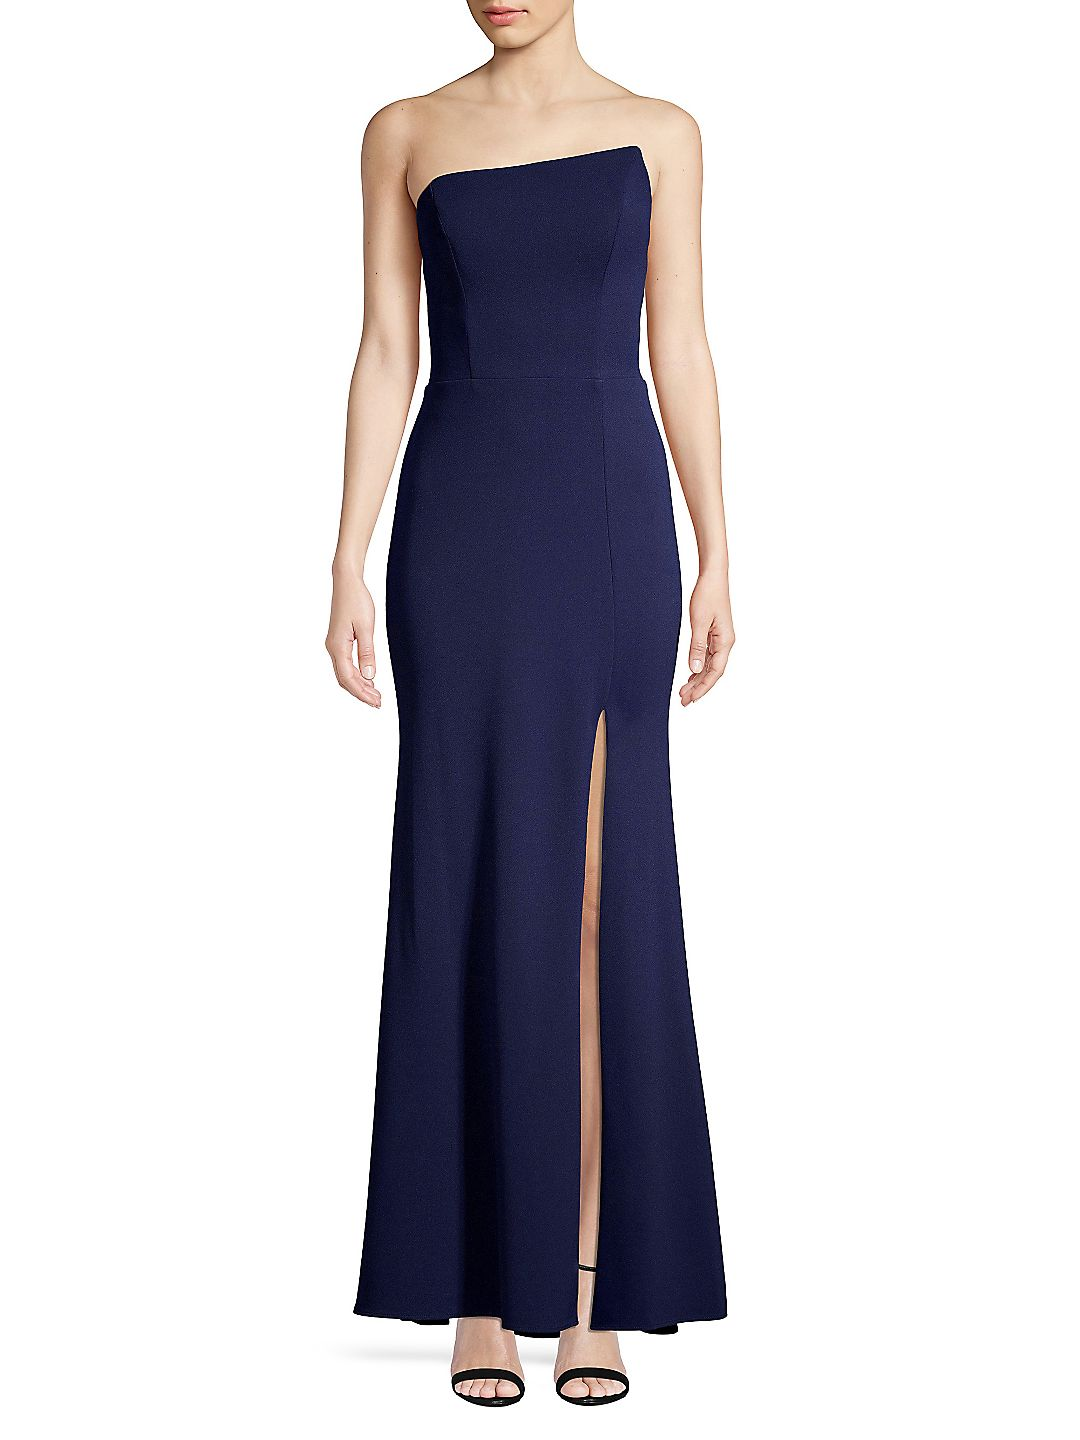 Strapless Asymmetrical Slit Gown